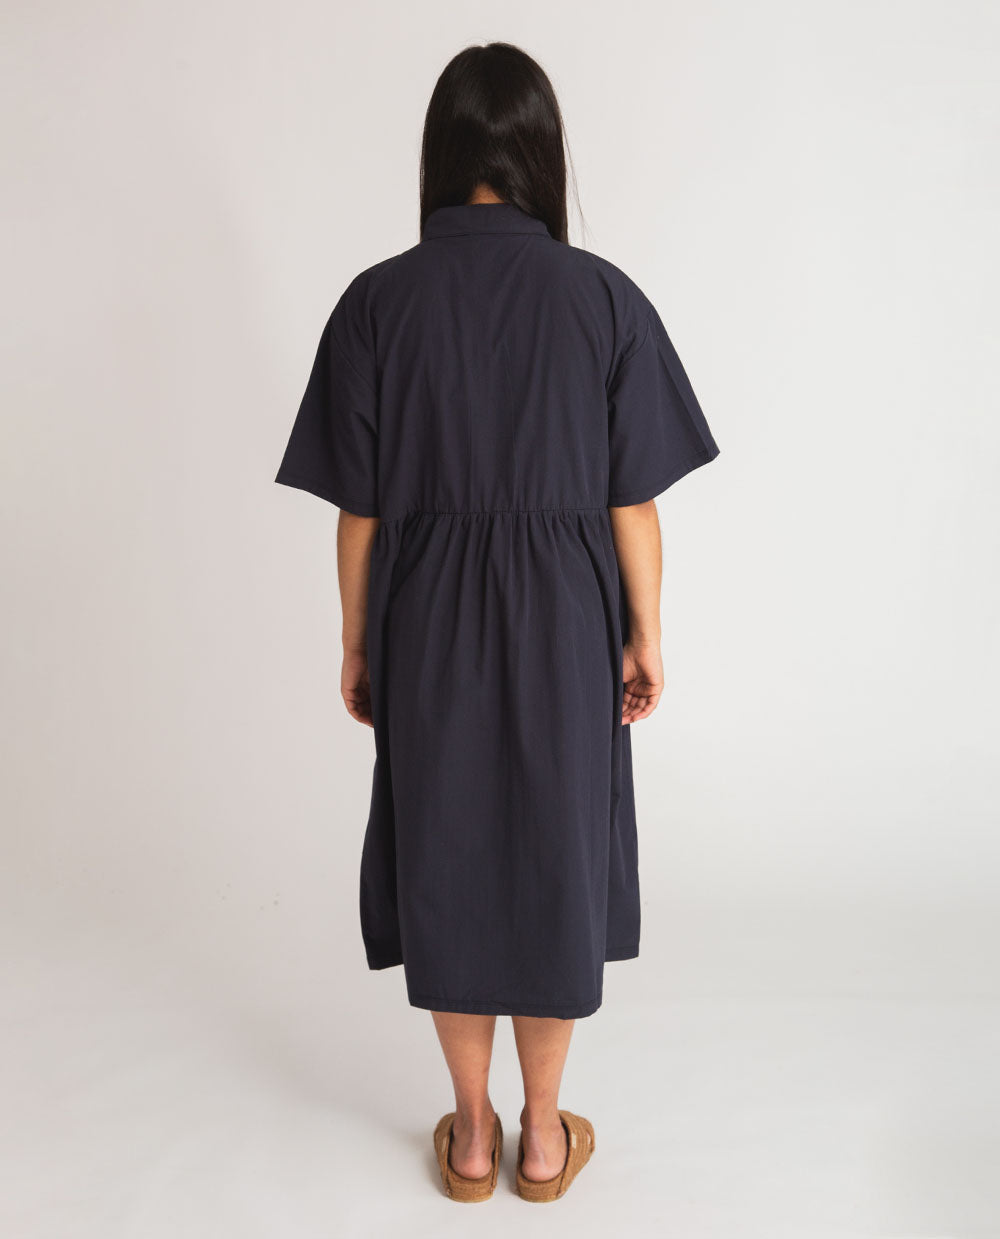 Patsy Organic Cotton Dress In Navy